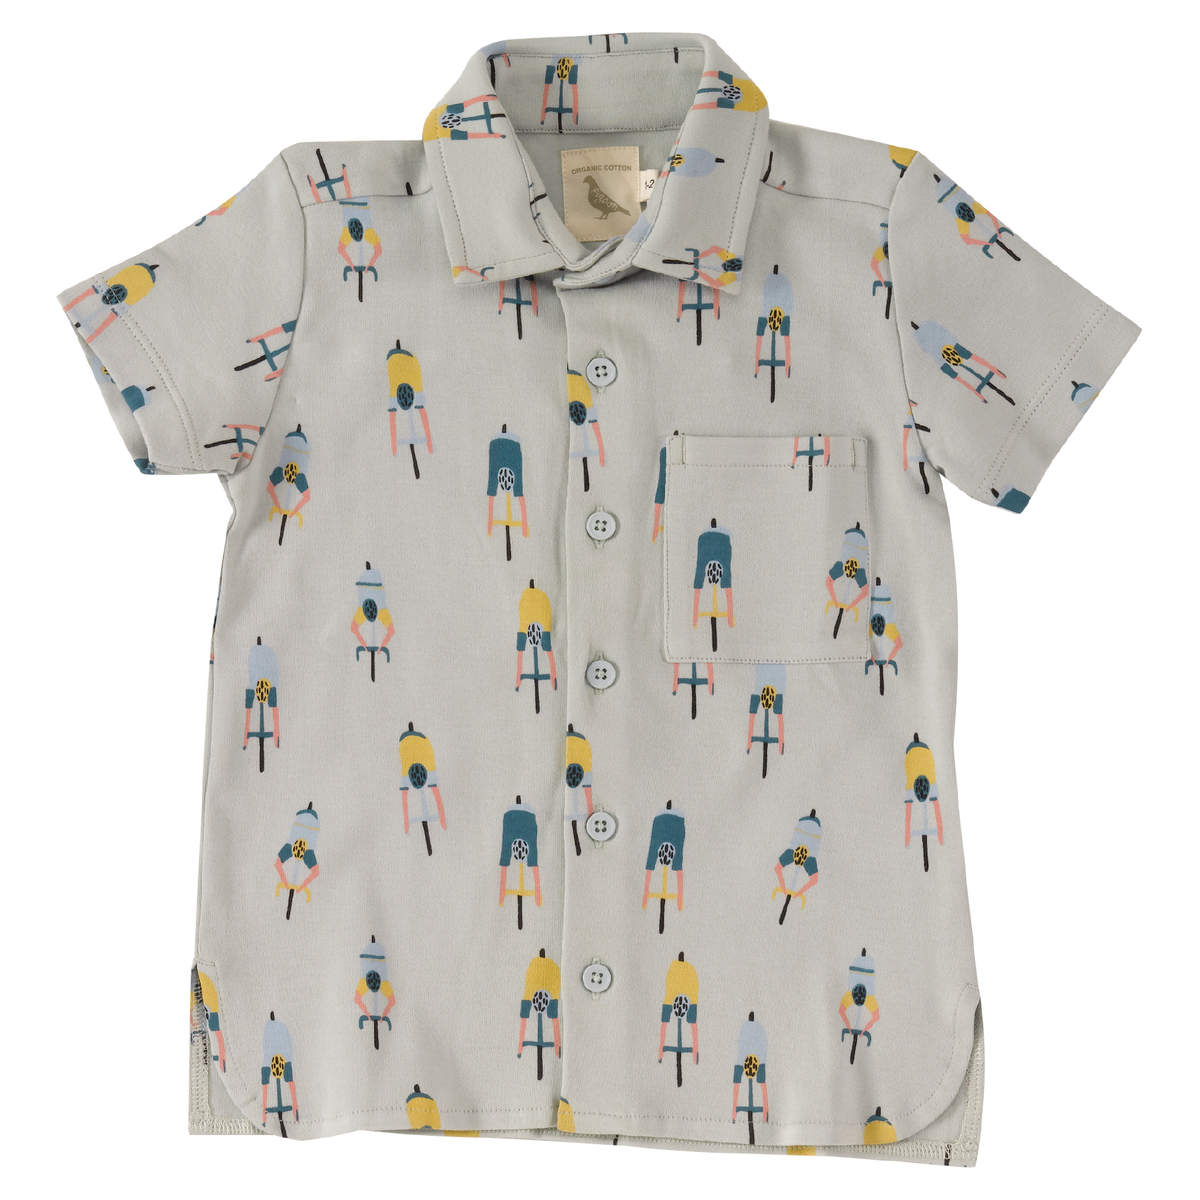 Printed Jersey Shirt - Cyclist